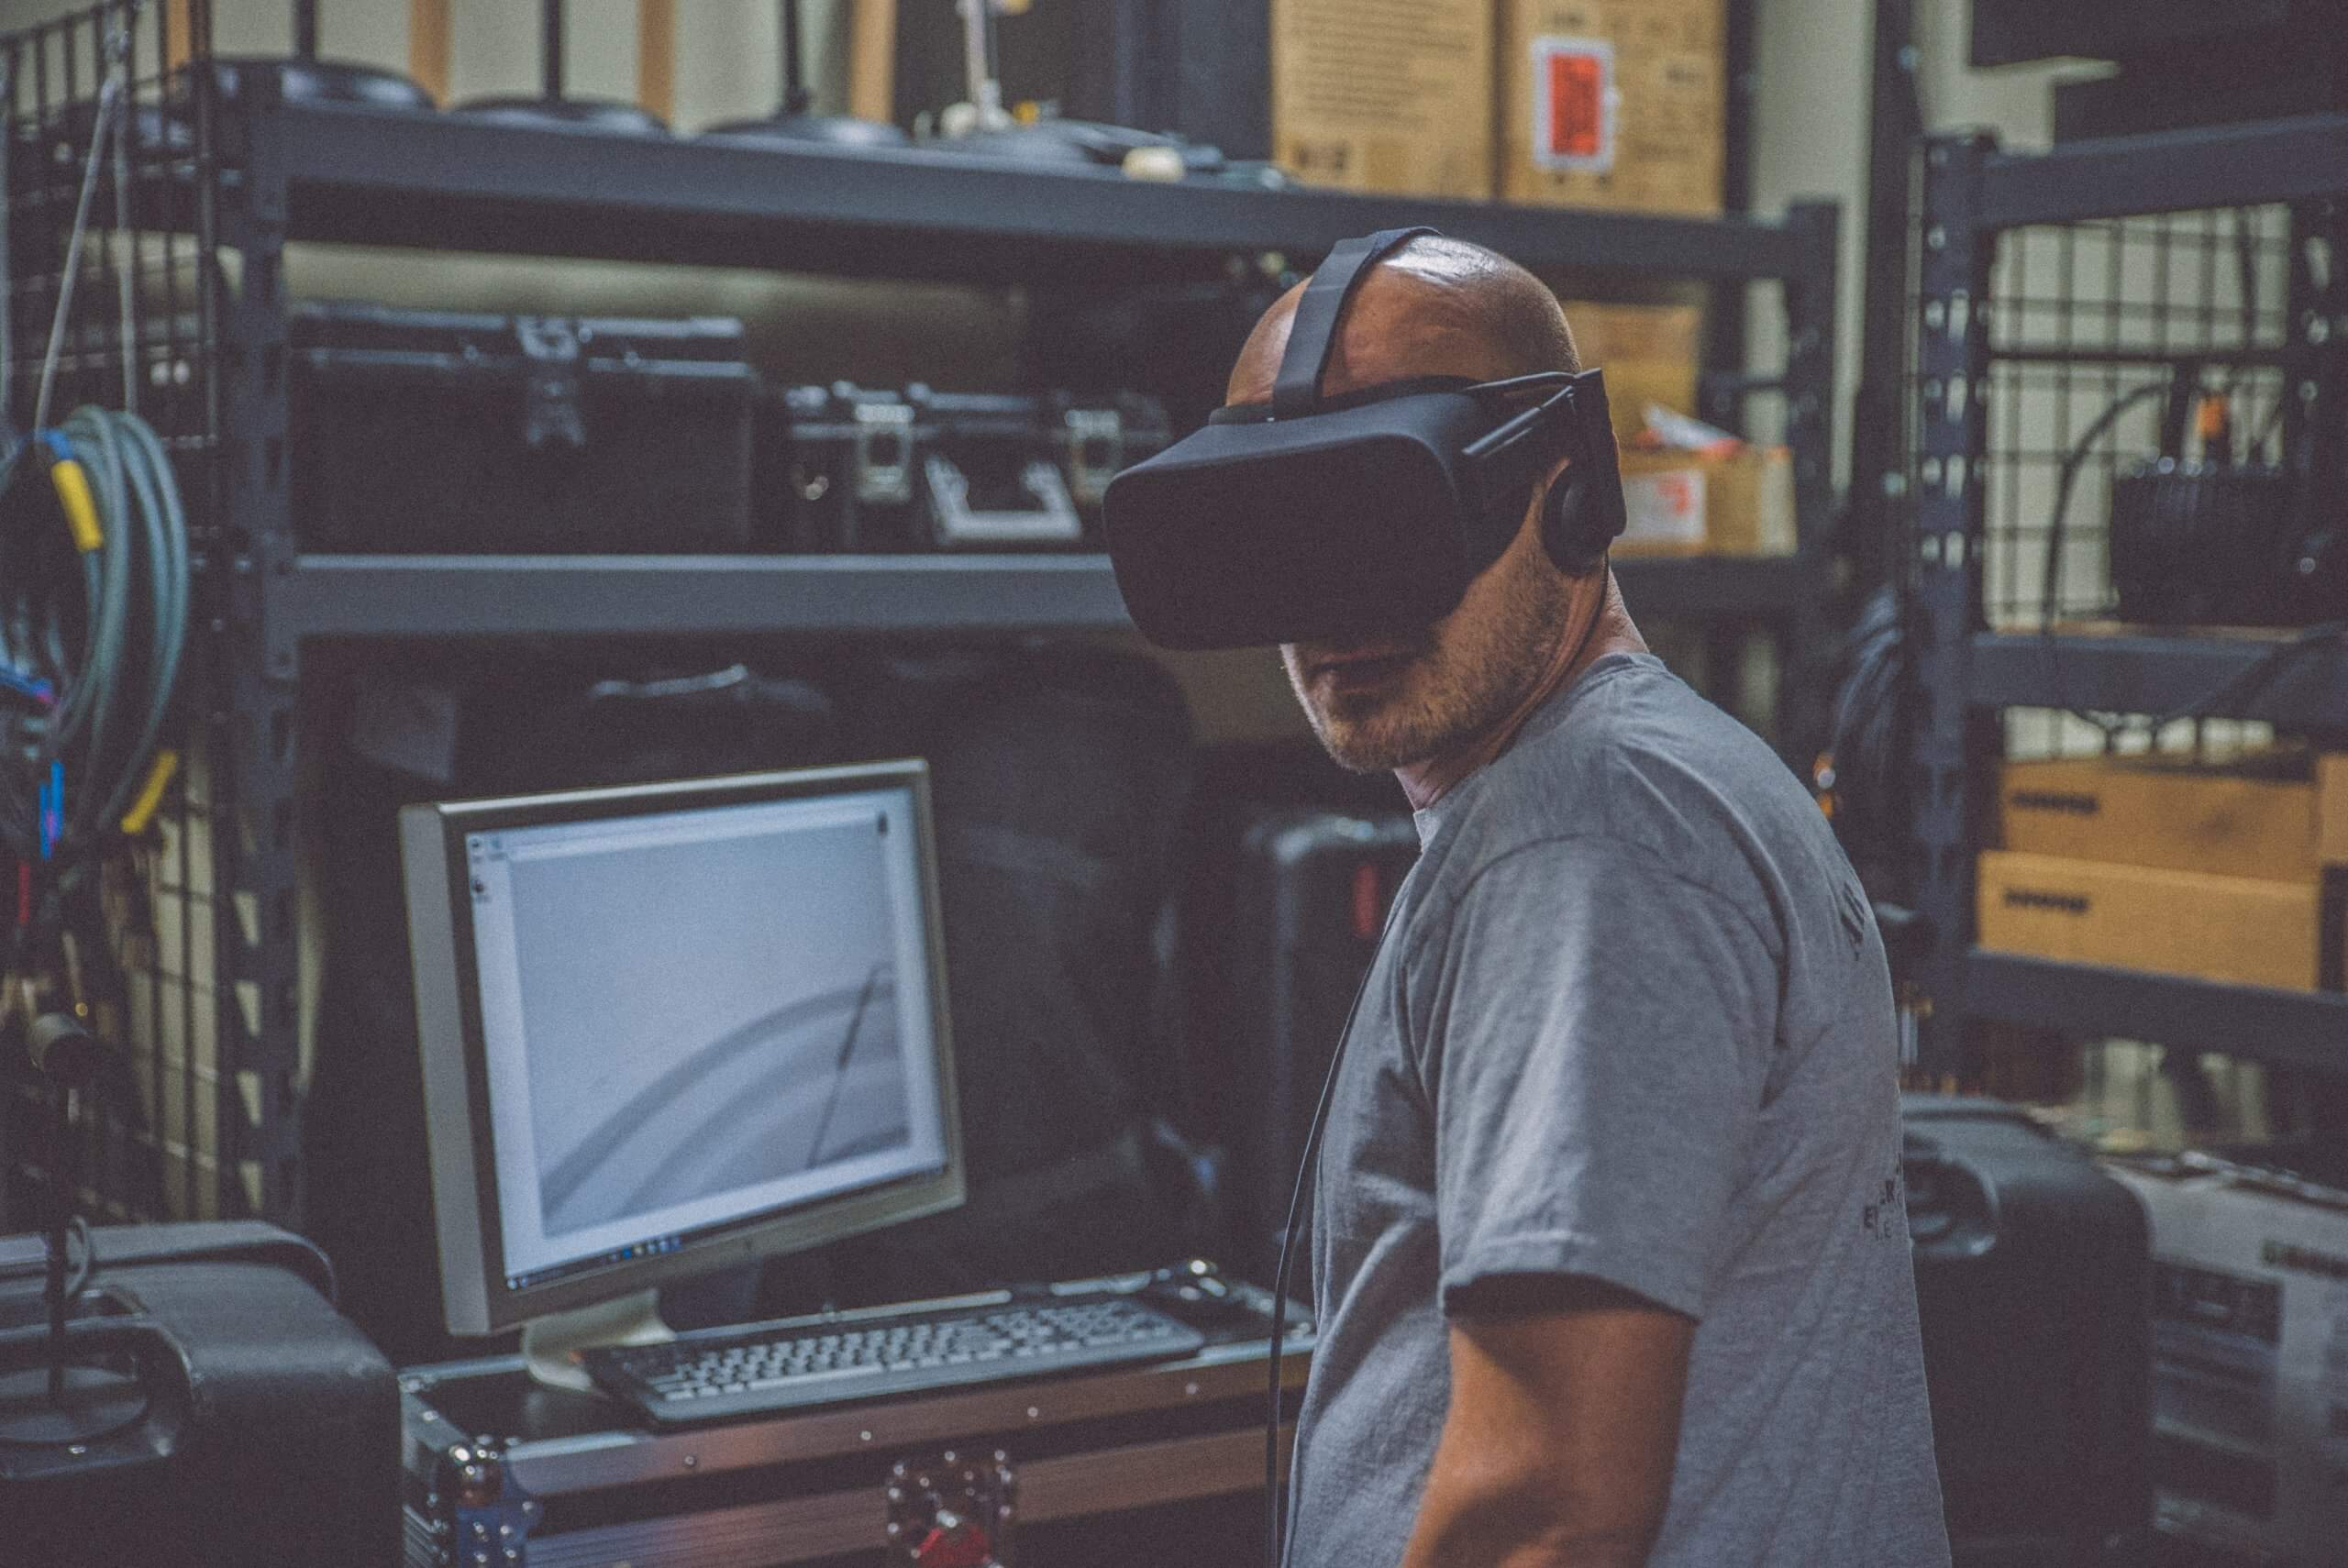 WEBINAR: Remote Communications with Virtual & Augmented Reality